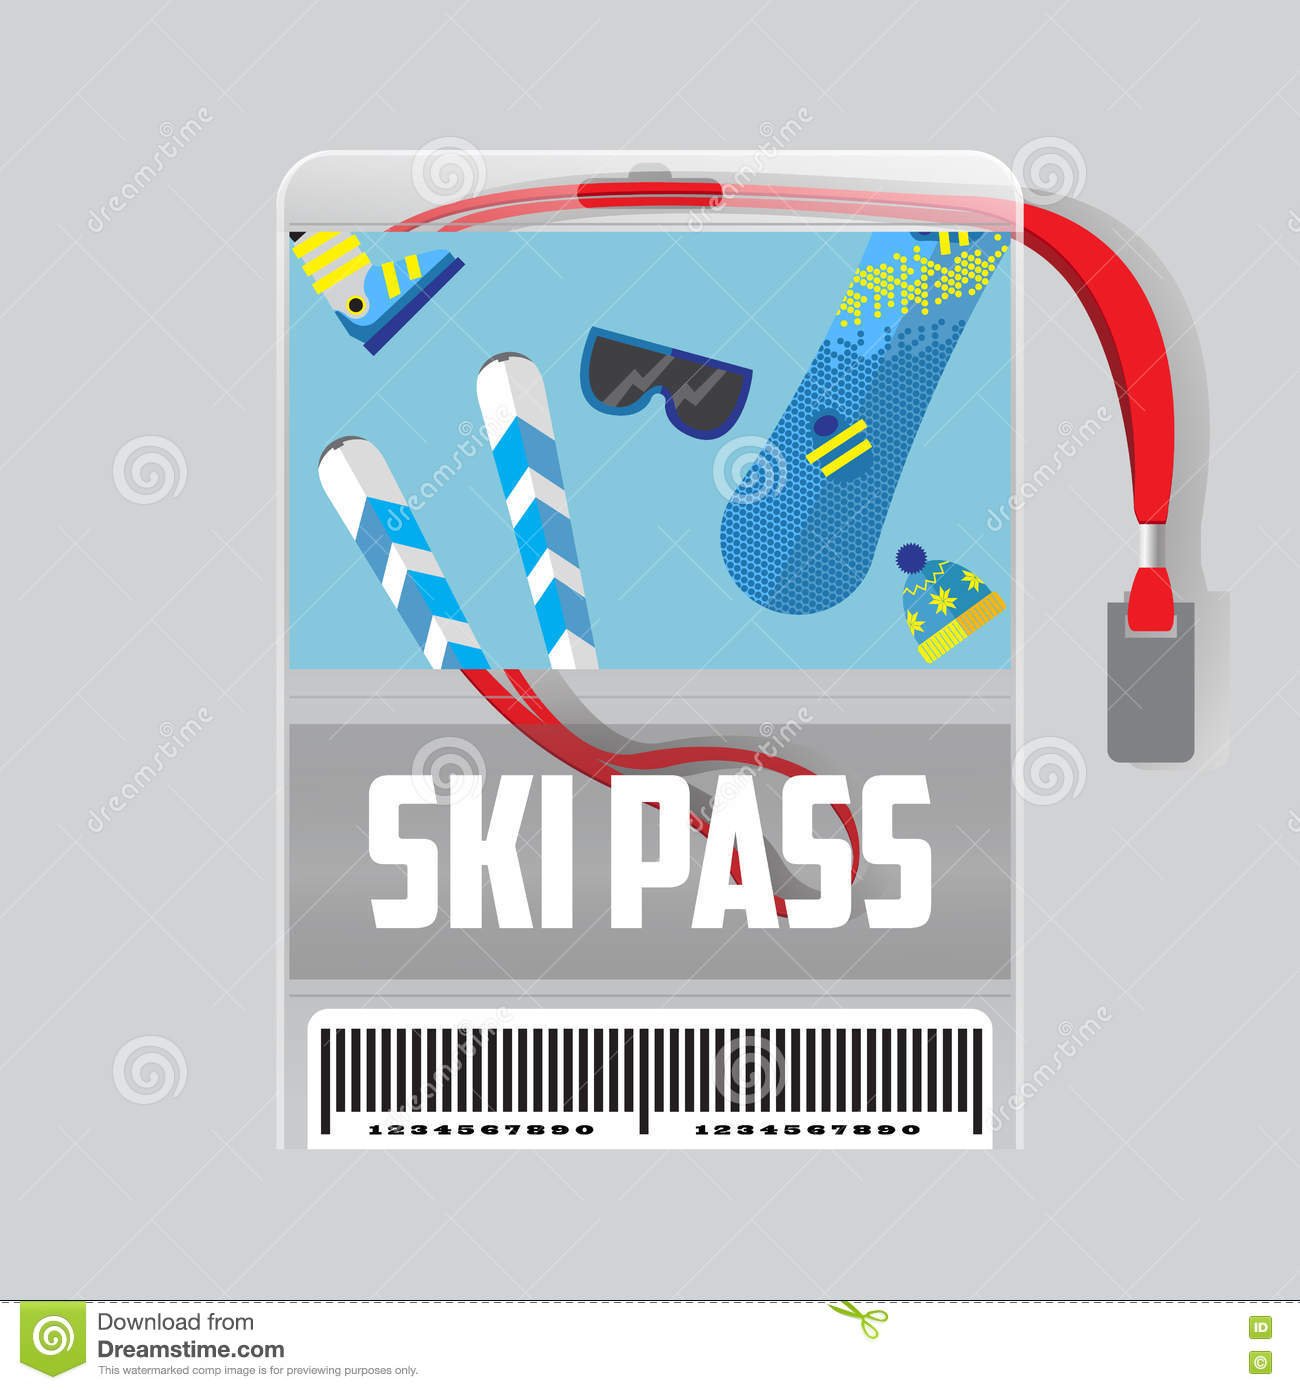 Ski Pass Template With Barcode. Red Ribbon .equipment for winter holidays.Flat Design